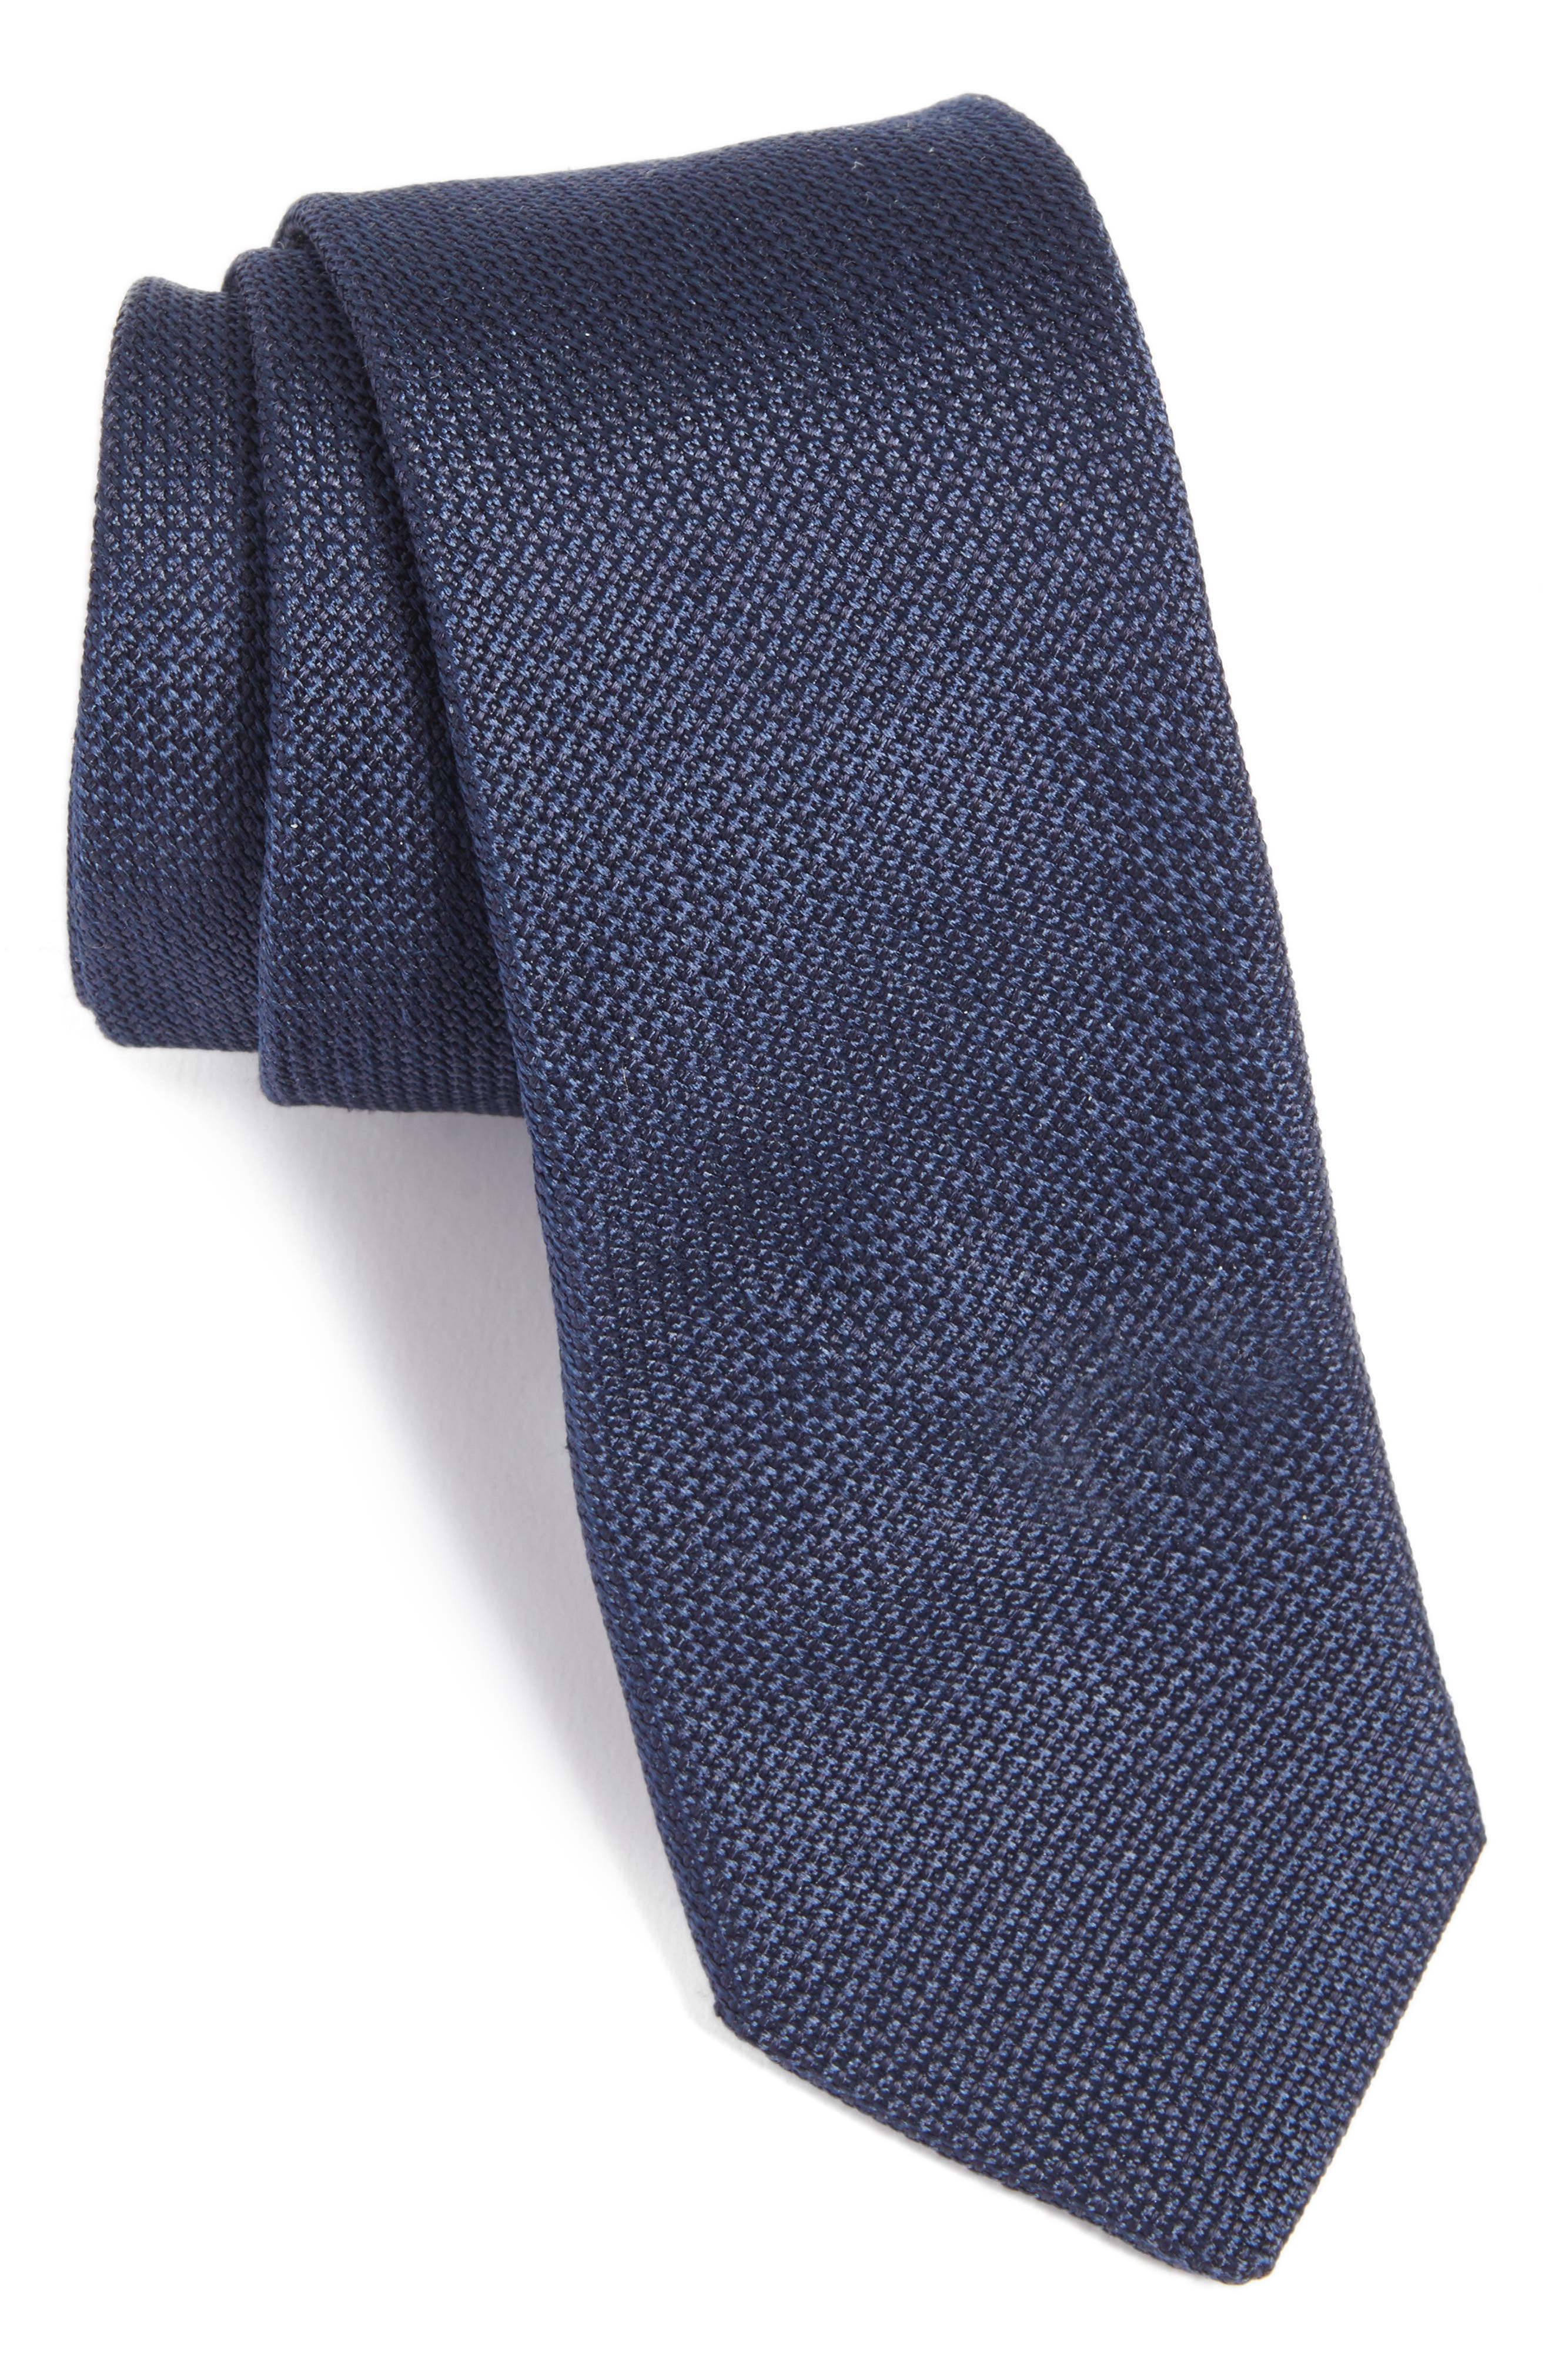 Solid Silk Tie,                         Main,                         color, Navy